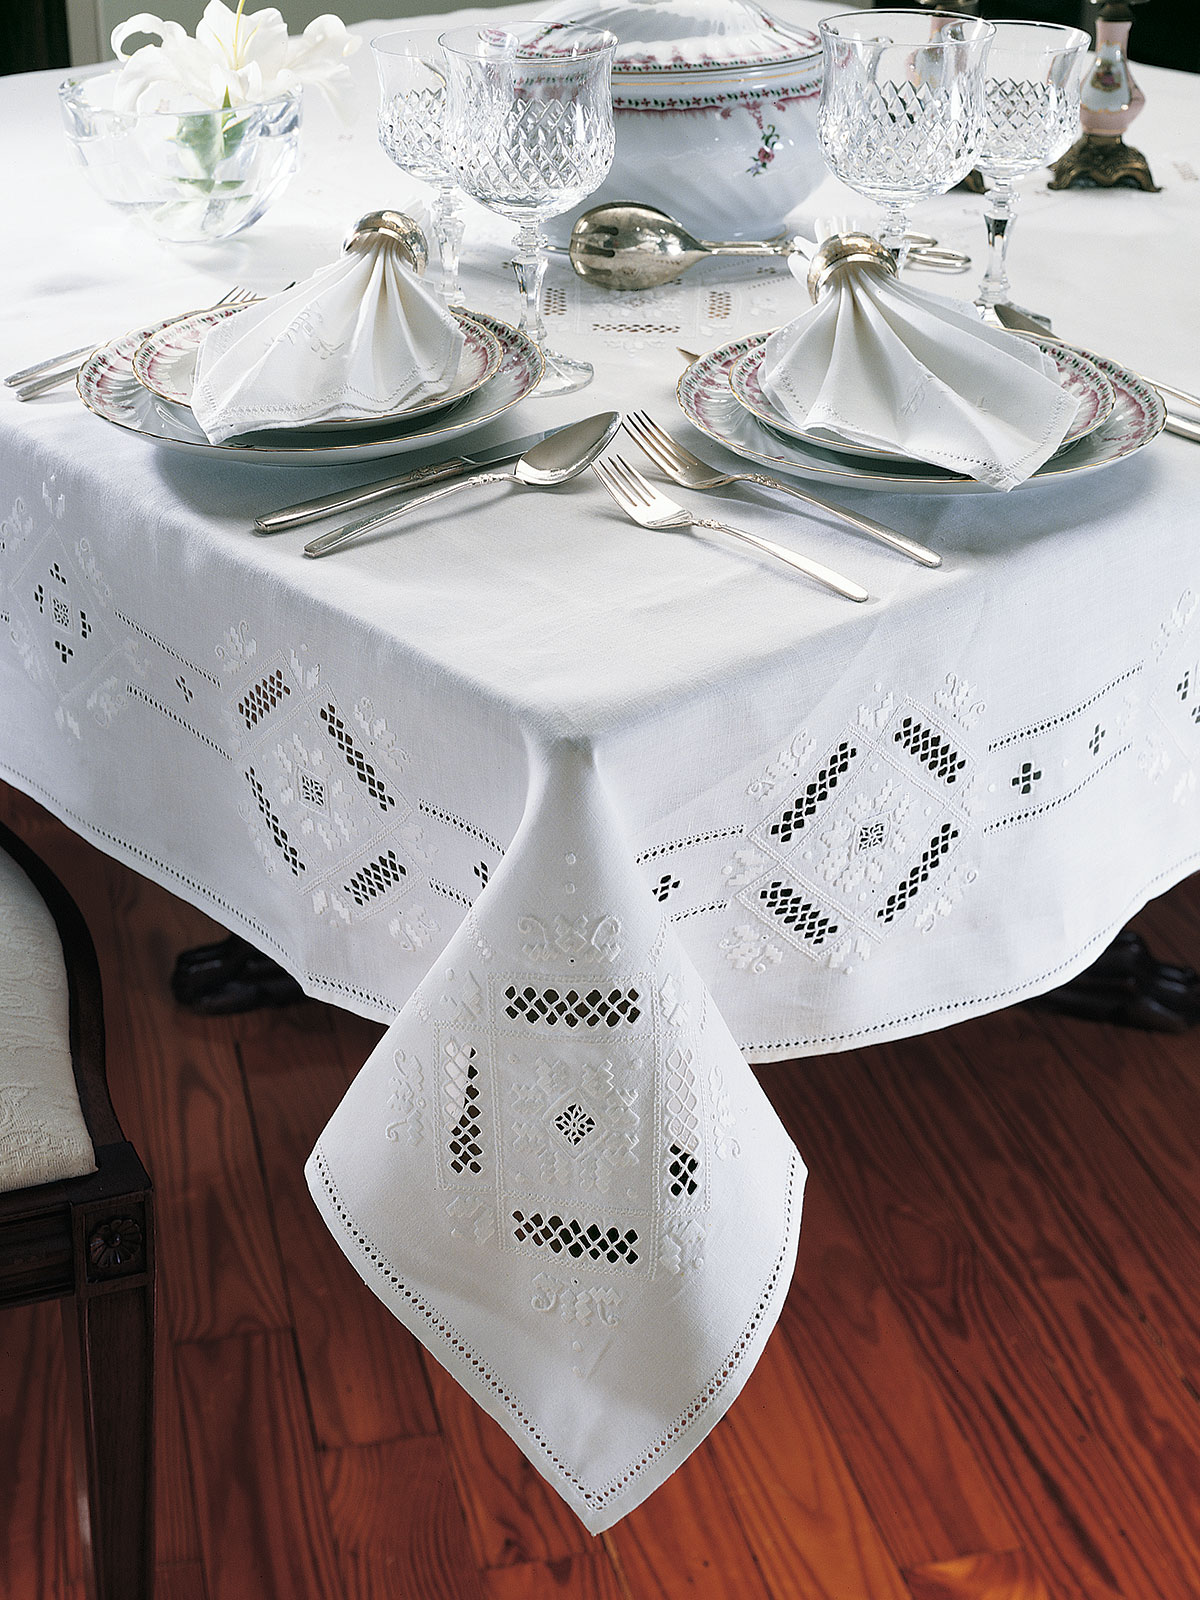 Surprising Royale Tablecloths Fine Table Linens Schweitzer Linen Interior Design Ideas Oxytryabchikinfo